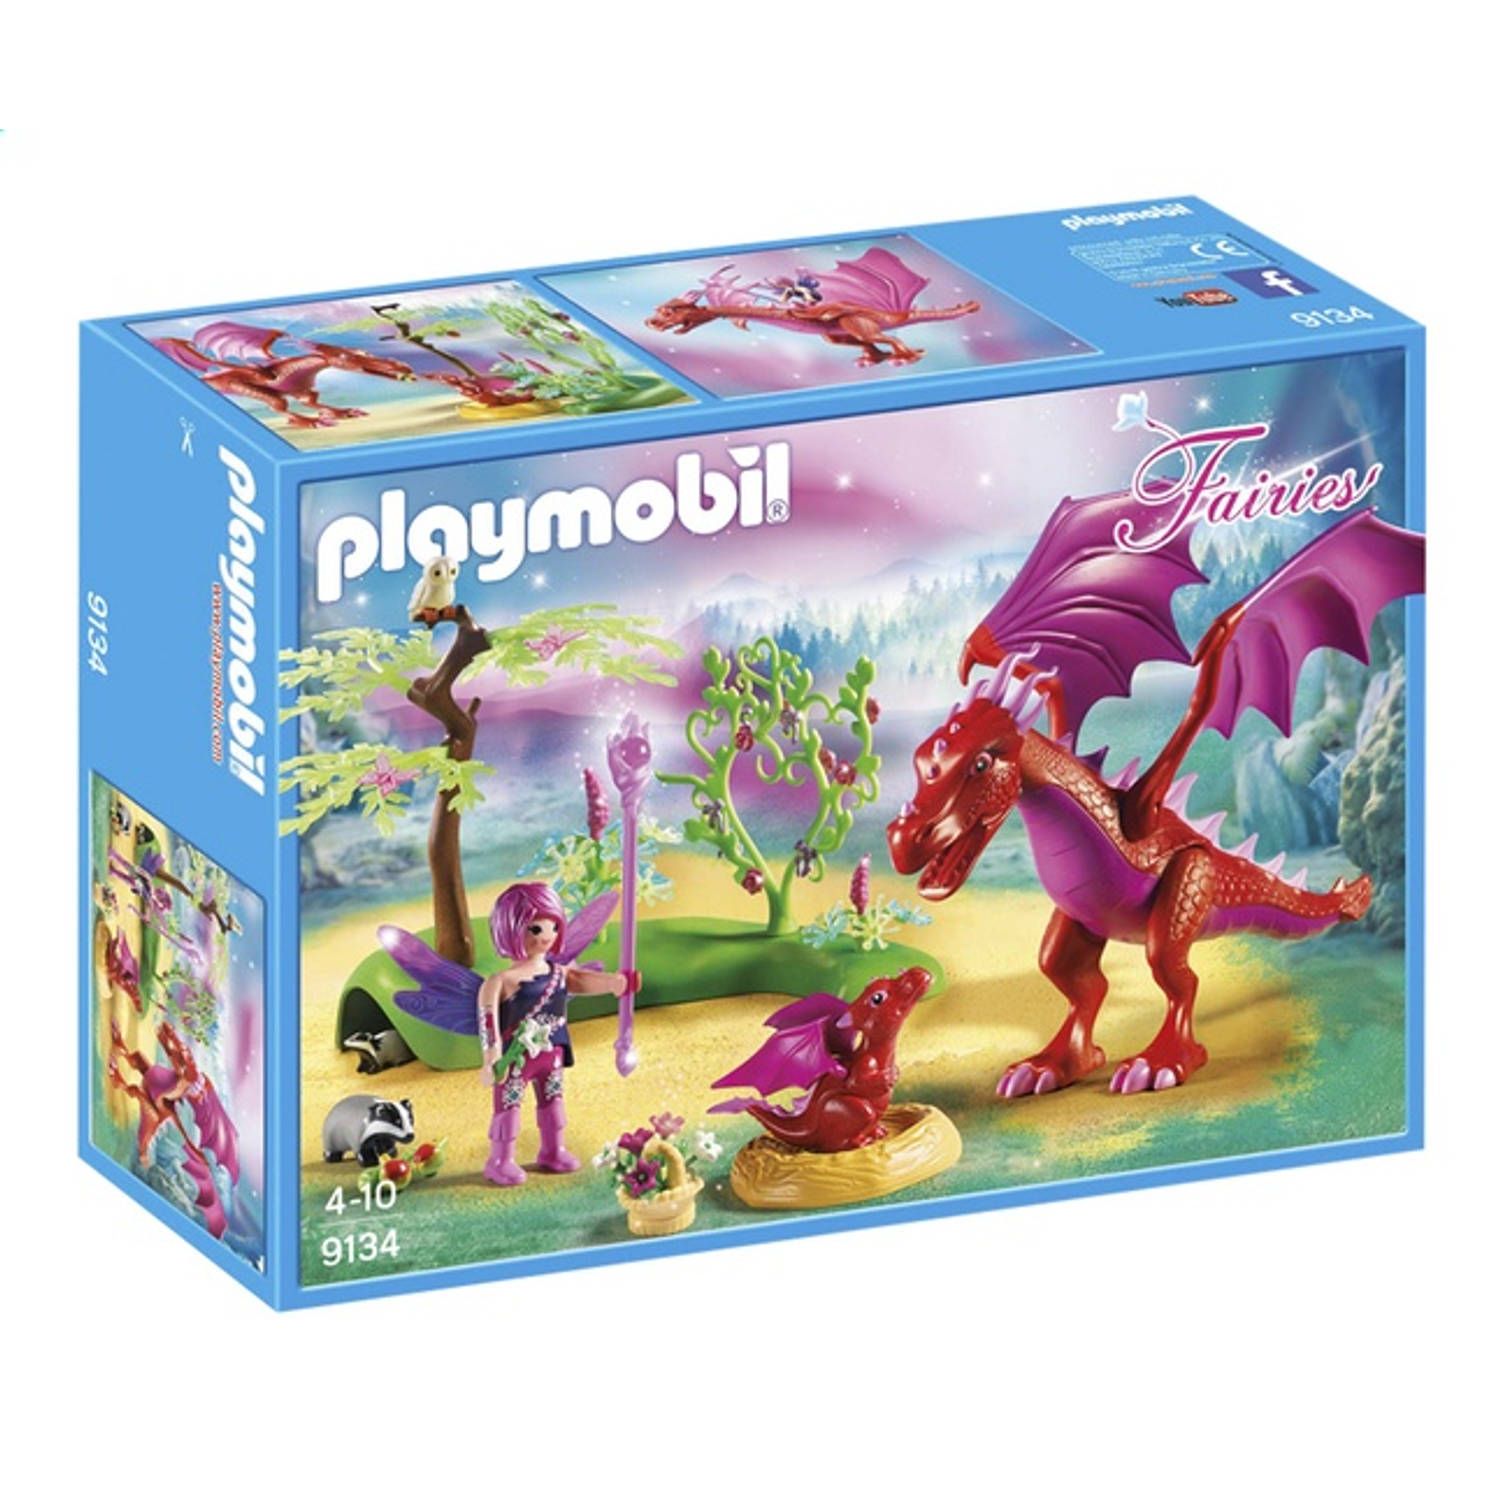 PLAYMOBIL Fairies drakenhoeder met rode draken 9134